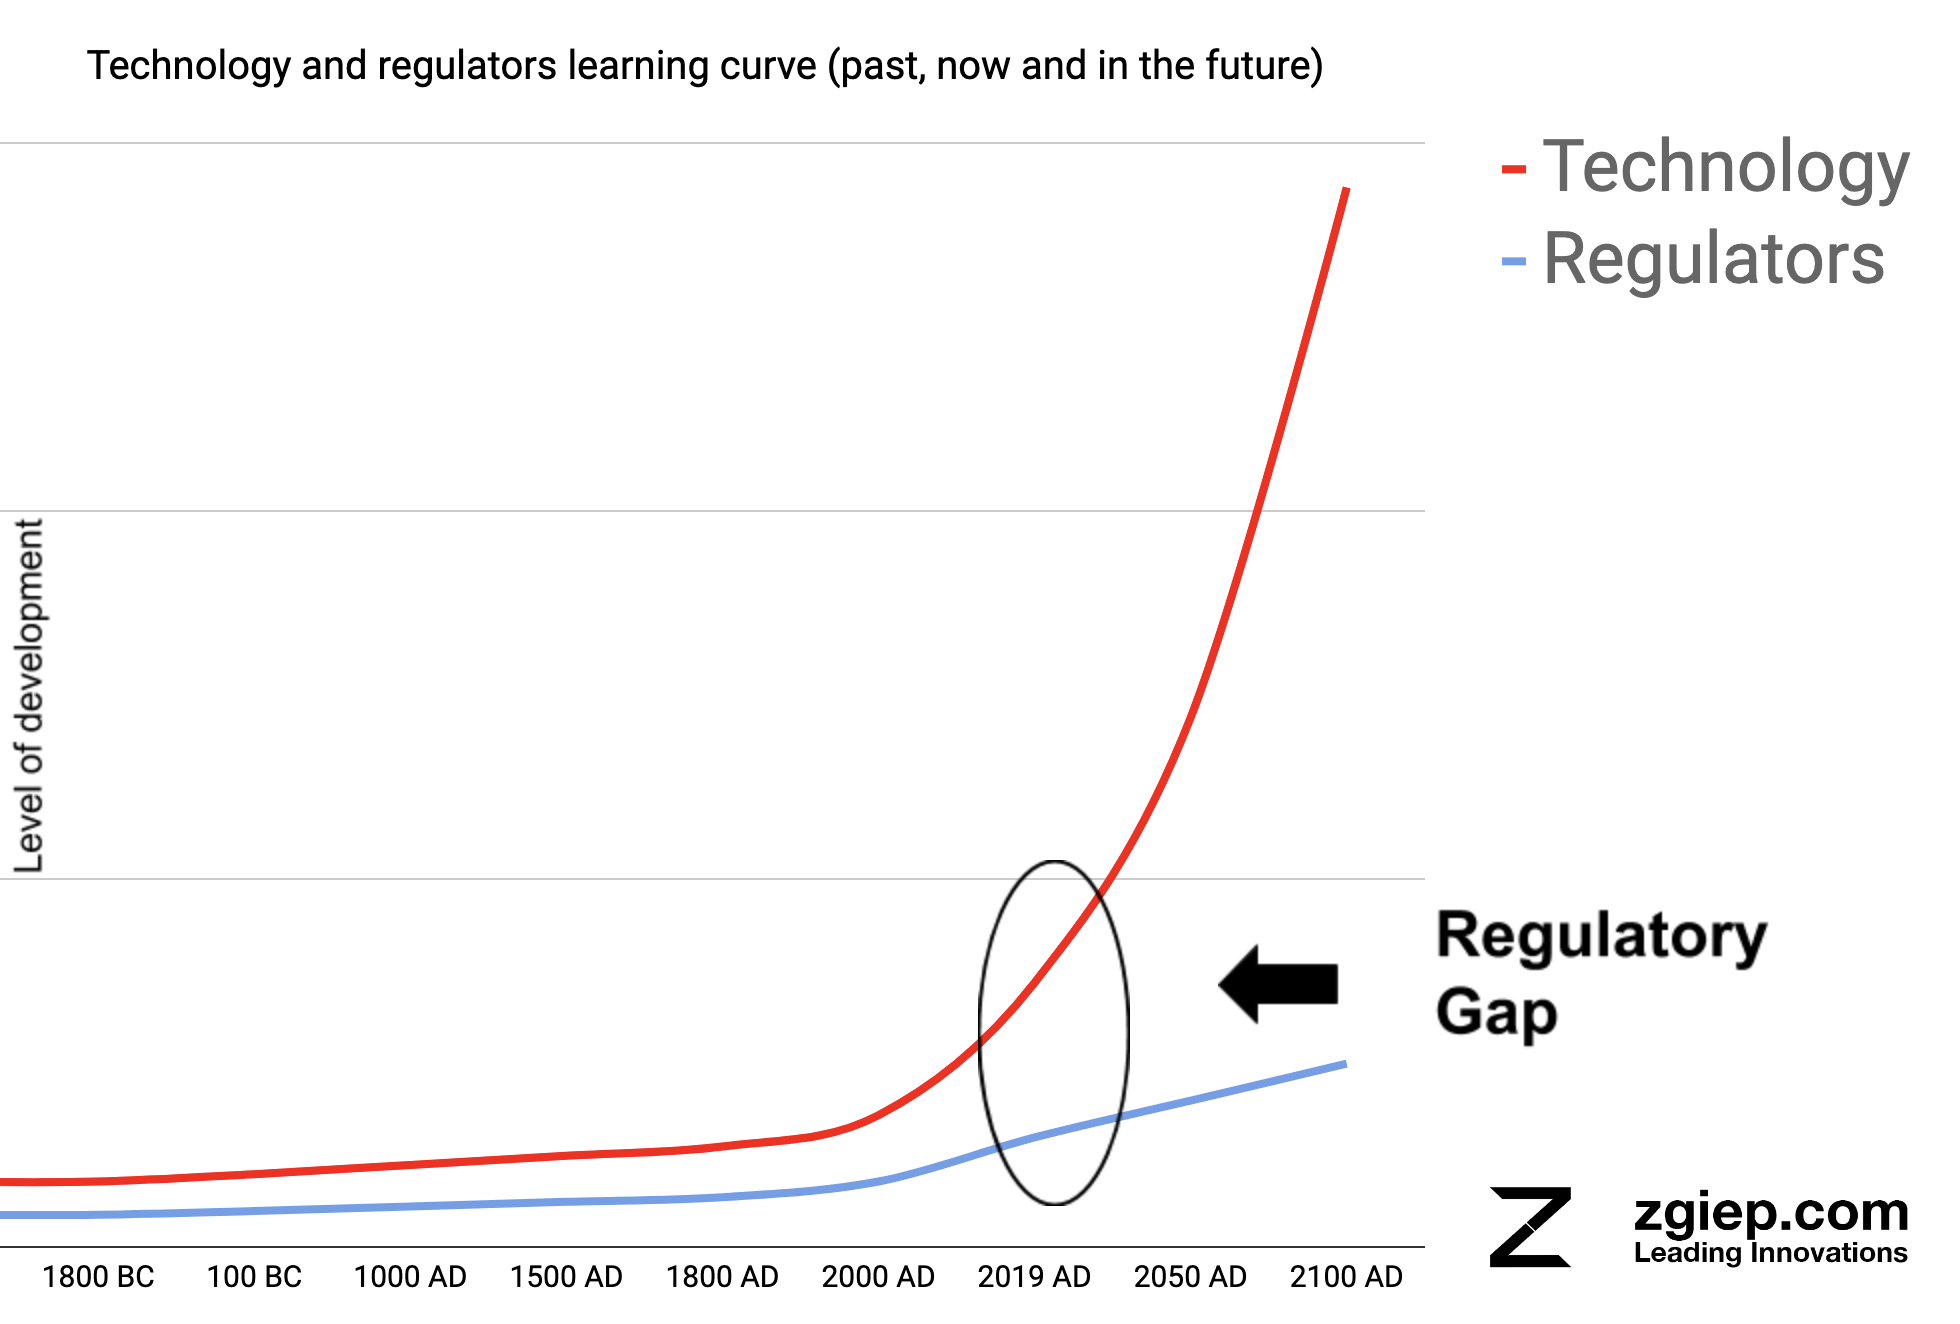 Technology and regulators learning curve (past, now and in the future)